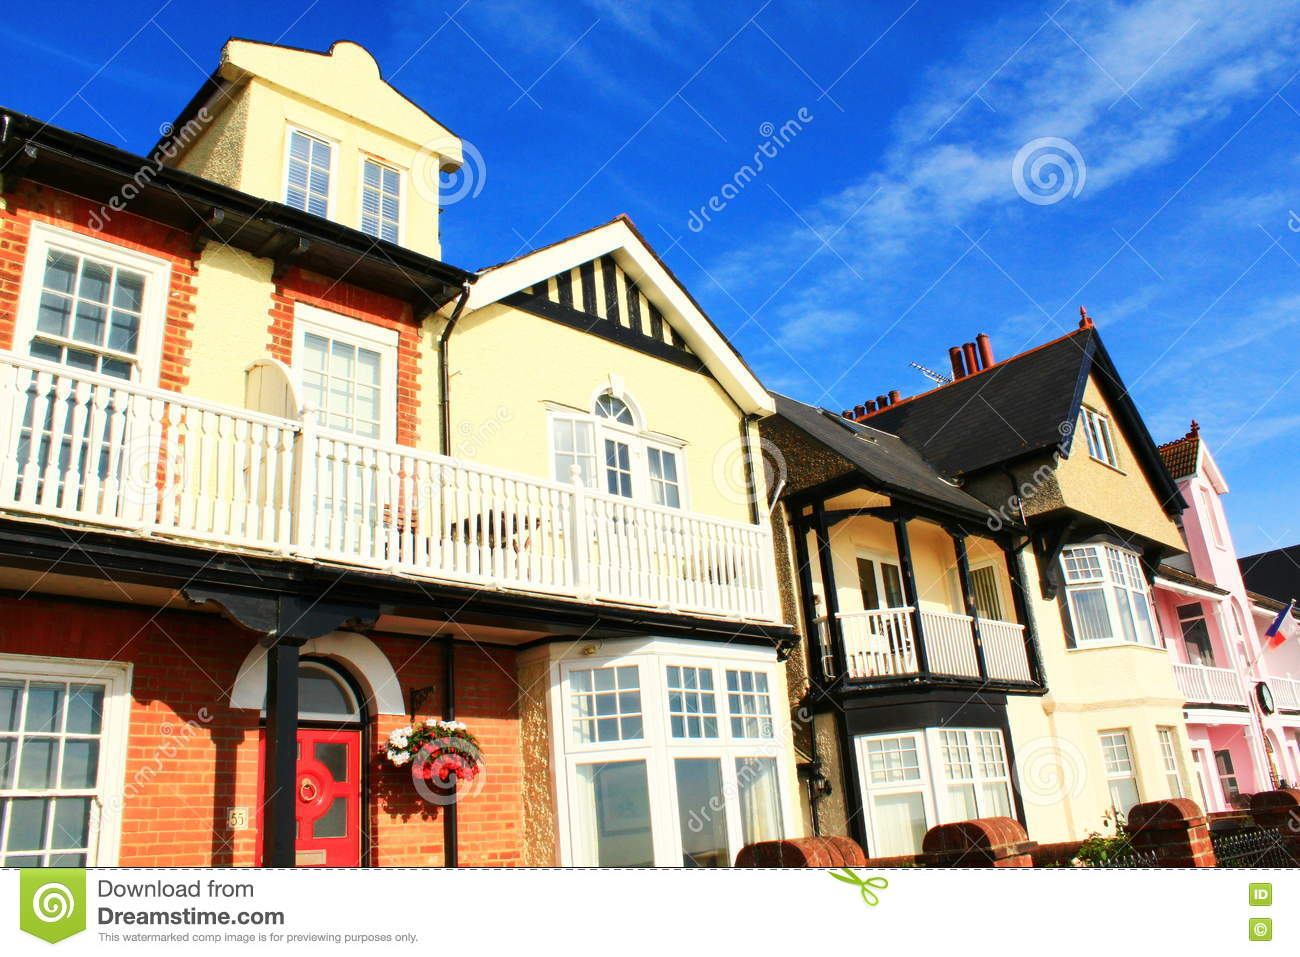 Picturesque English Houses Stock Photo - Image: 77881966